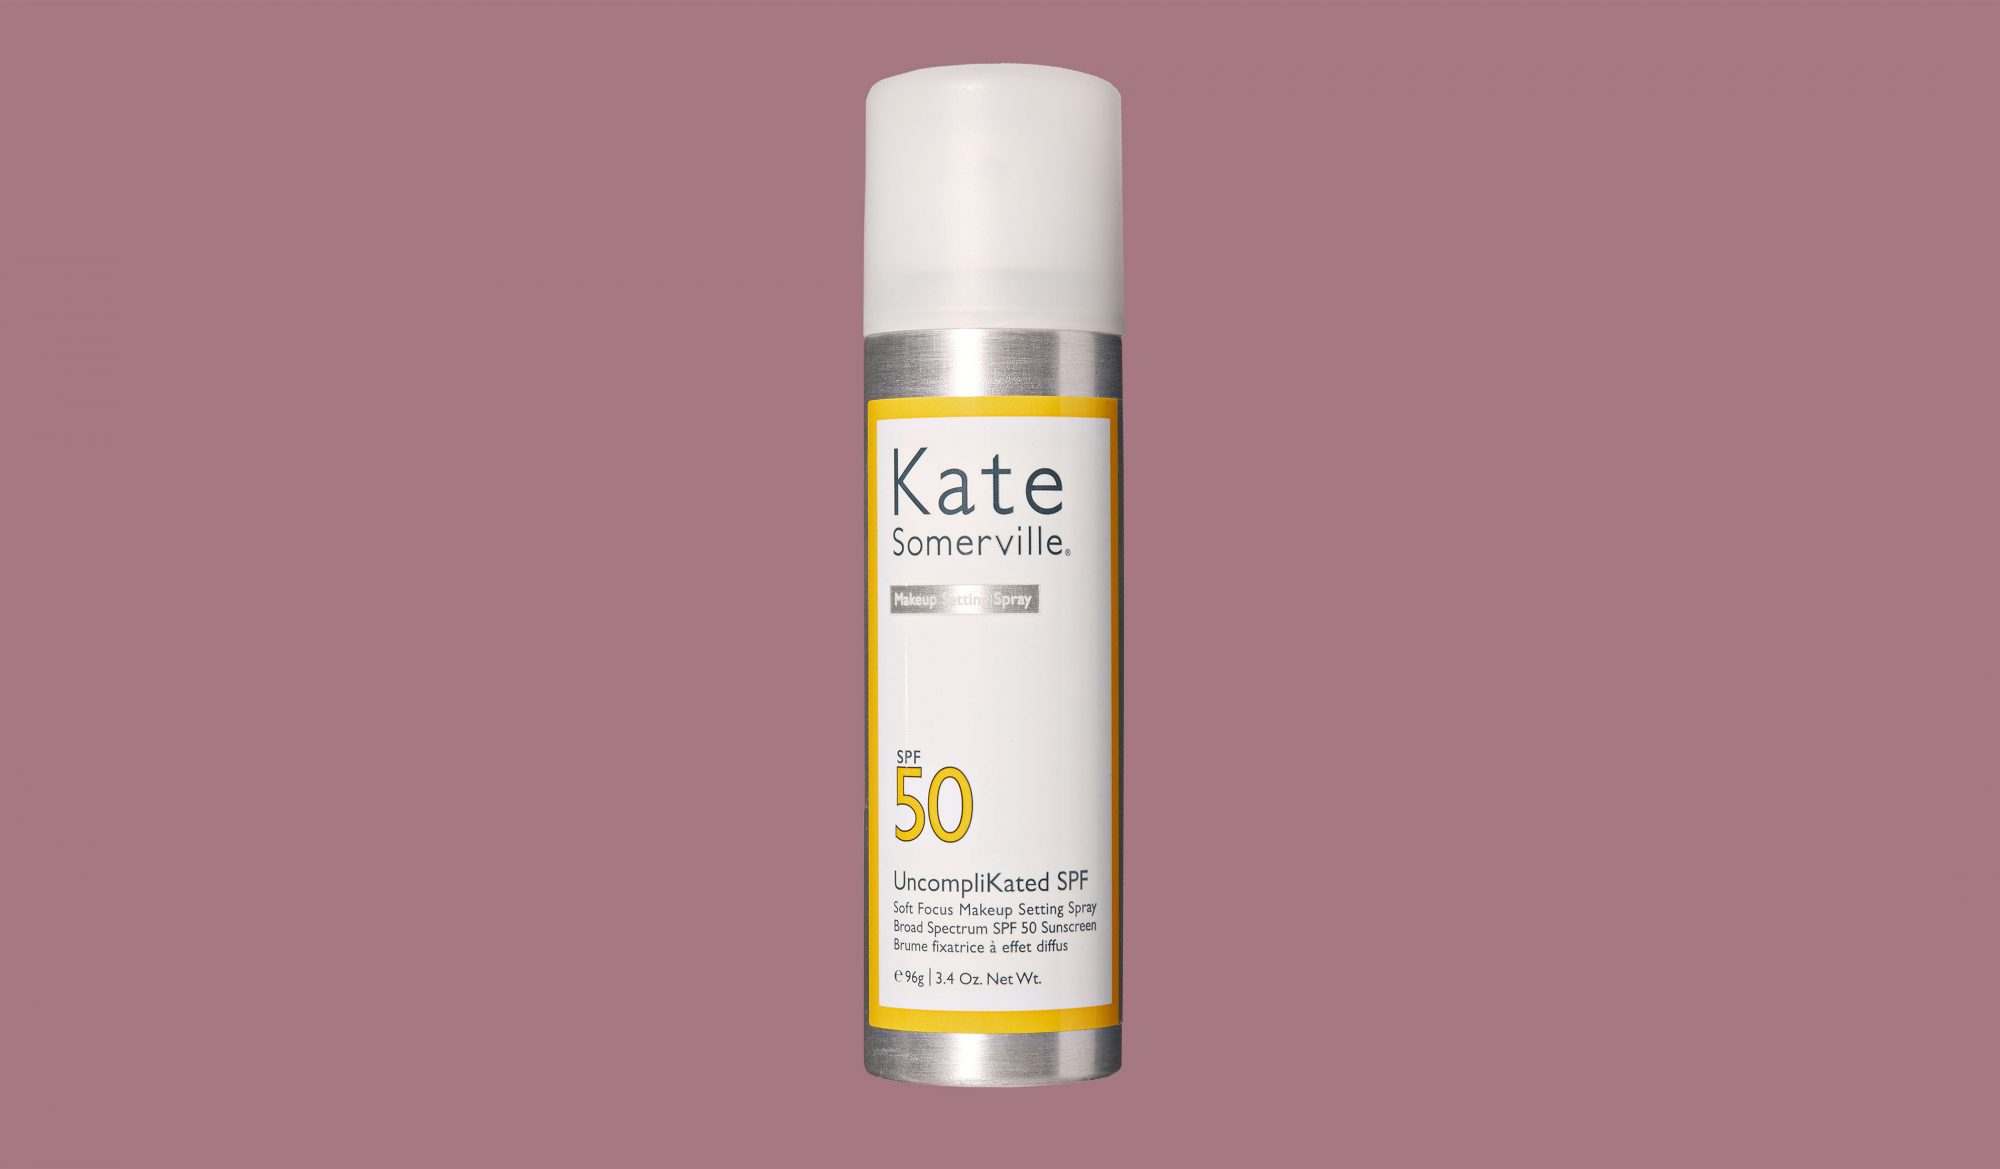 Kate Sommerville makeup setting spray